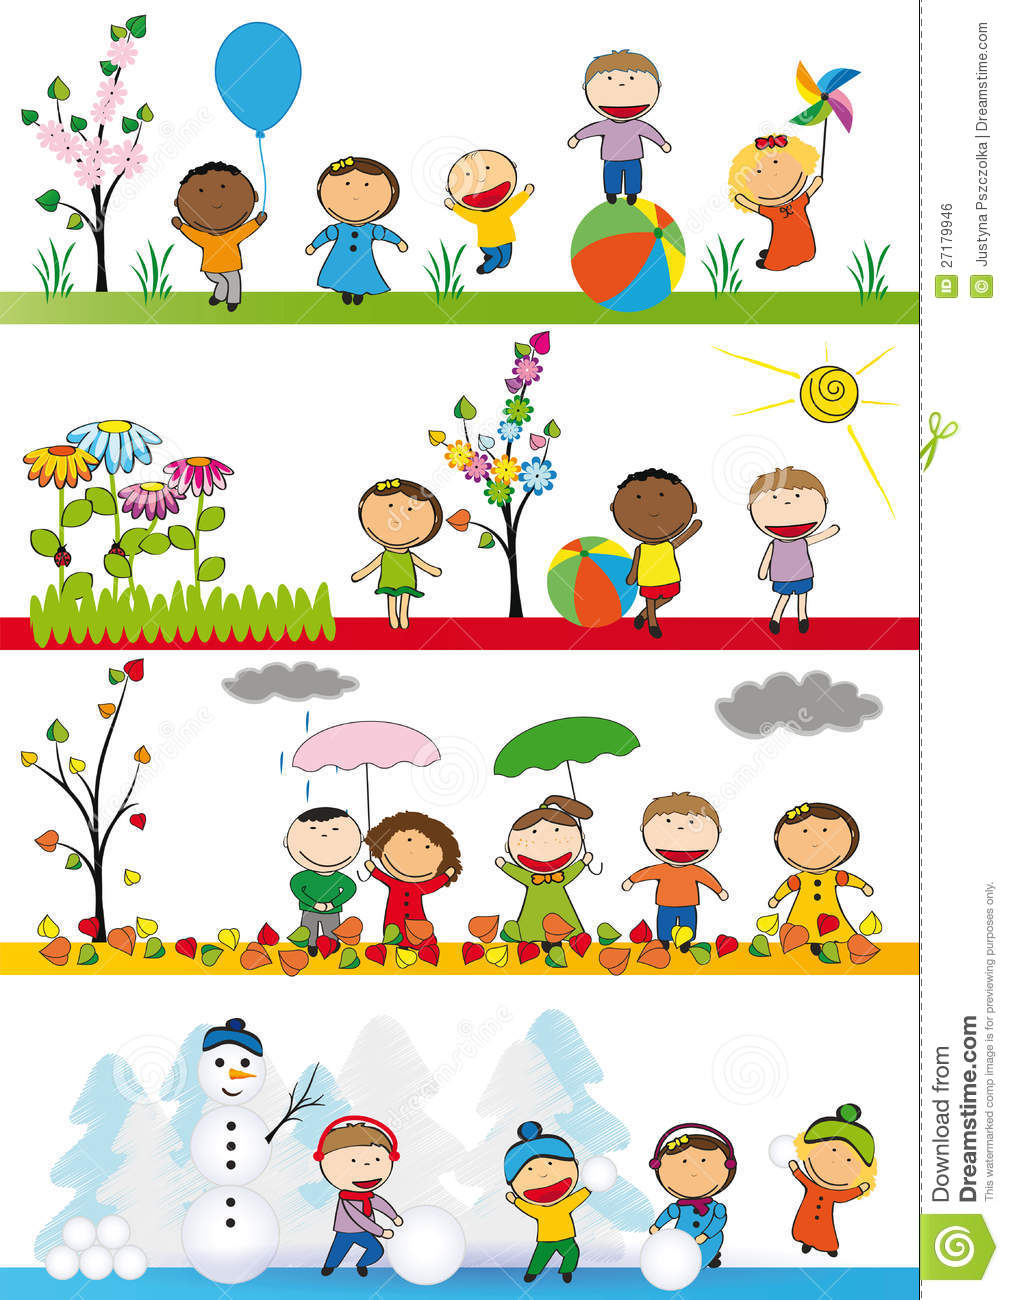 kids in four season royalty free stock image image 27179946 Windy Autumn Clip Art Fall Harvest Clip Art